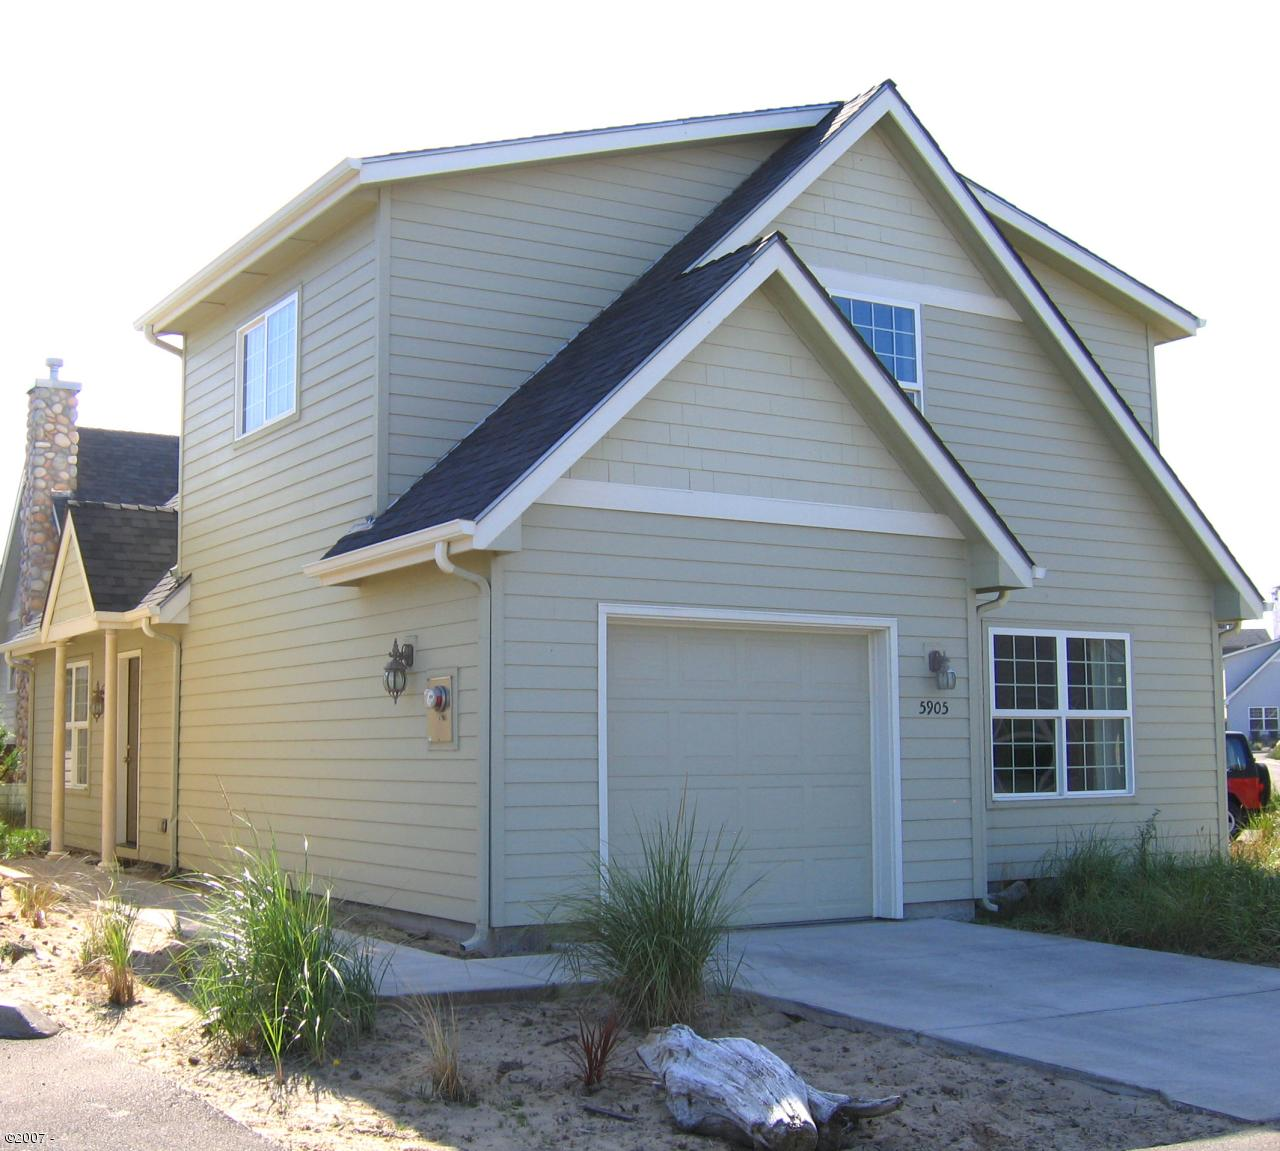 5905 Four Sisters Lane, Pacific City, OR 97135 (MLS:09-1029